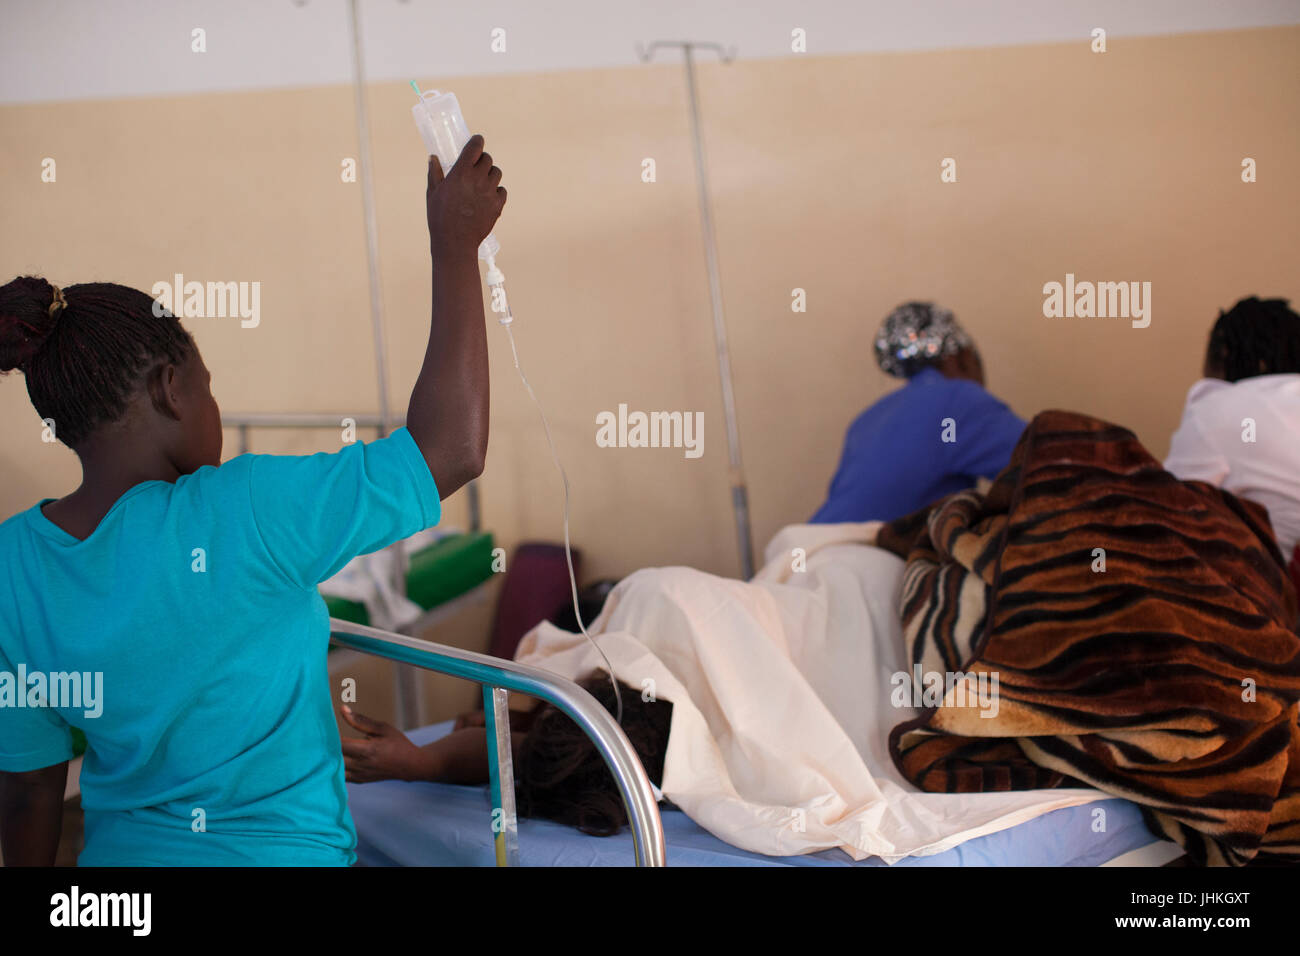 A relative holds up the drip while the nurse checks the patient at Kasangati Health Centre in Uganda. - Stock Image